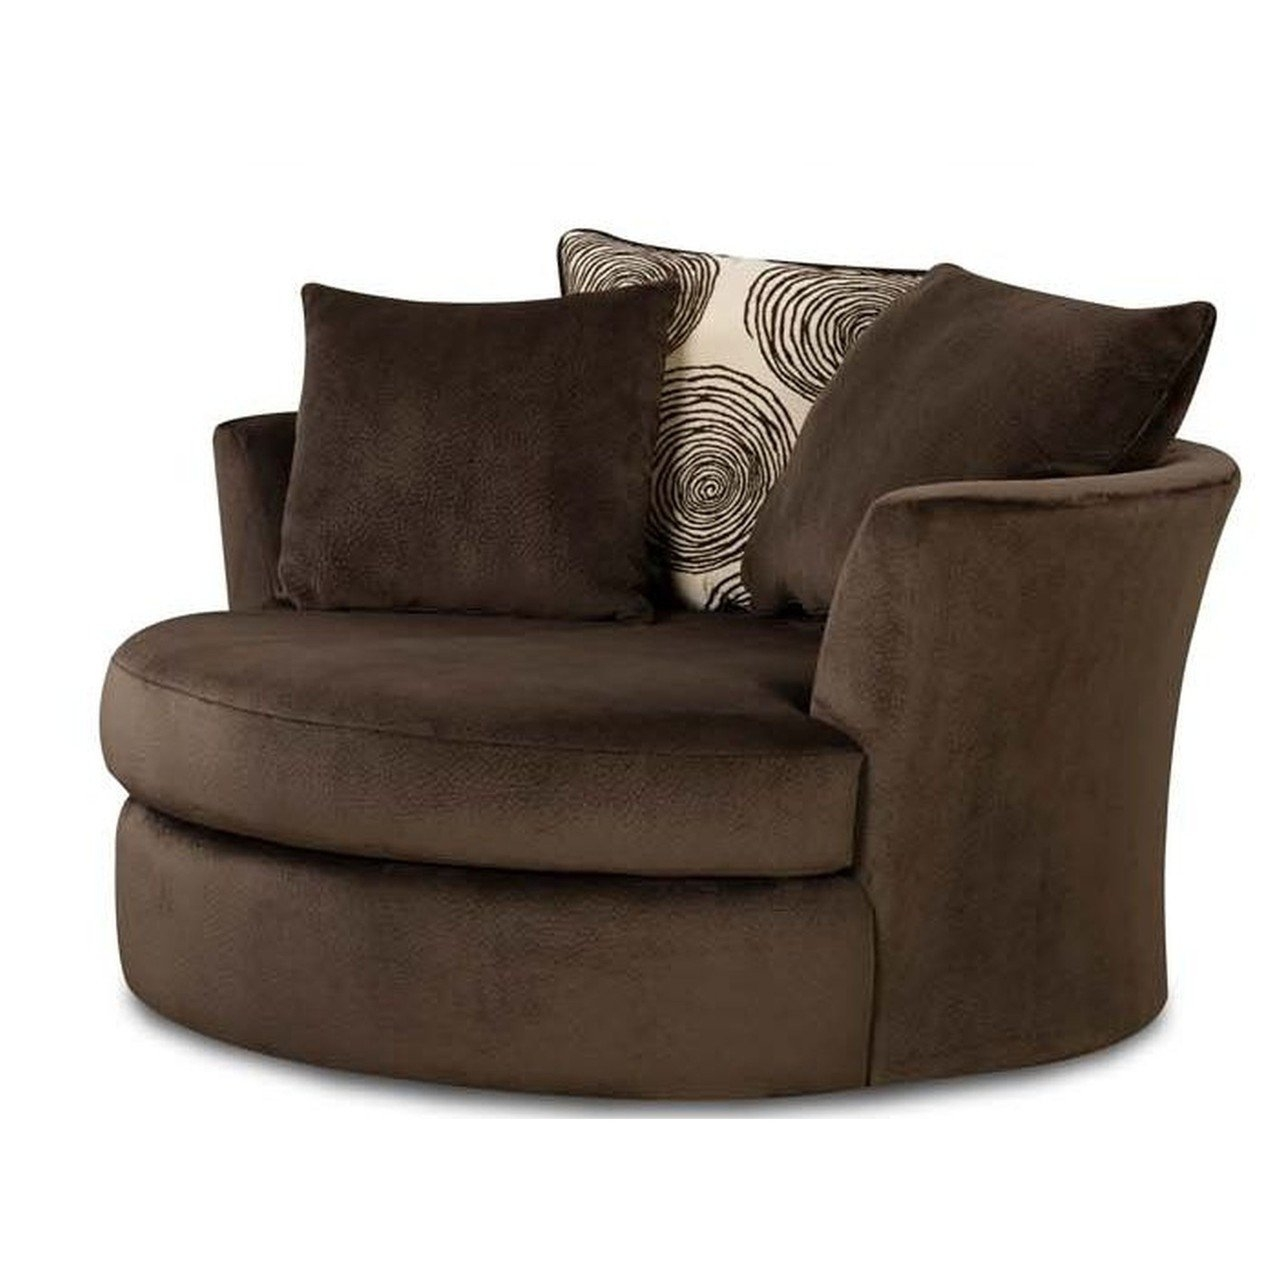 Round Sofa Chair 15 Collection Of Round Sofa Chair Sofa Ideas